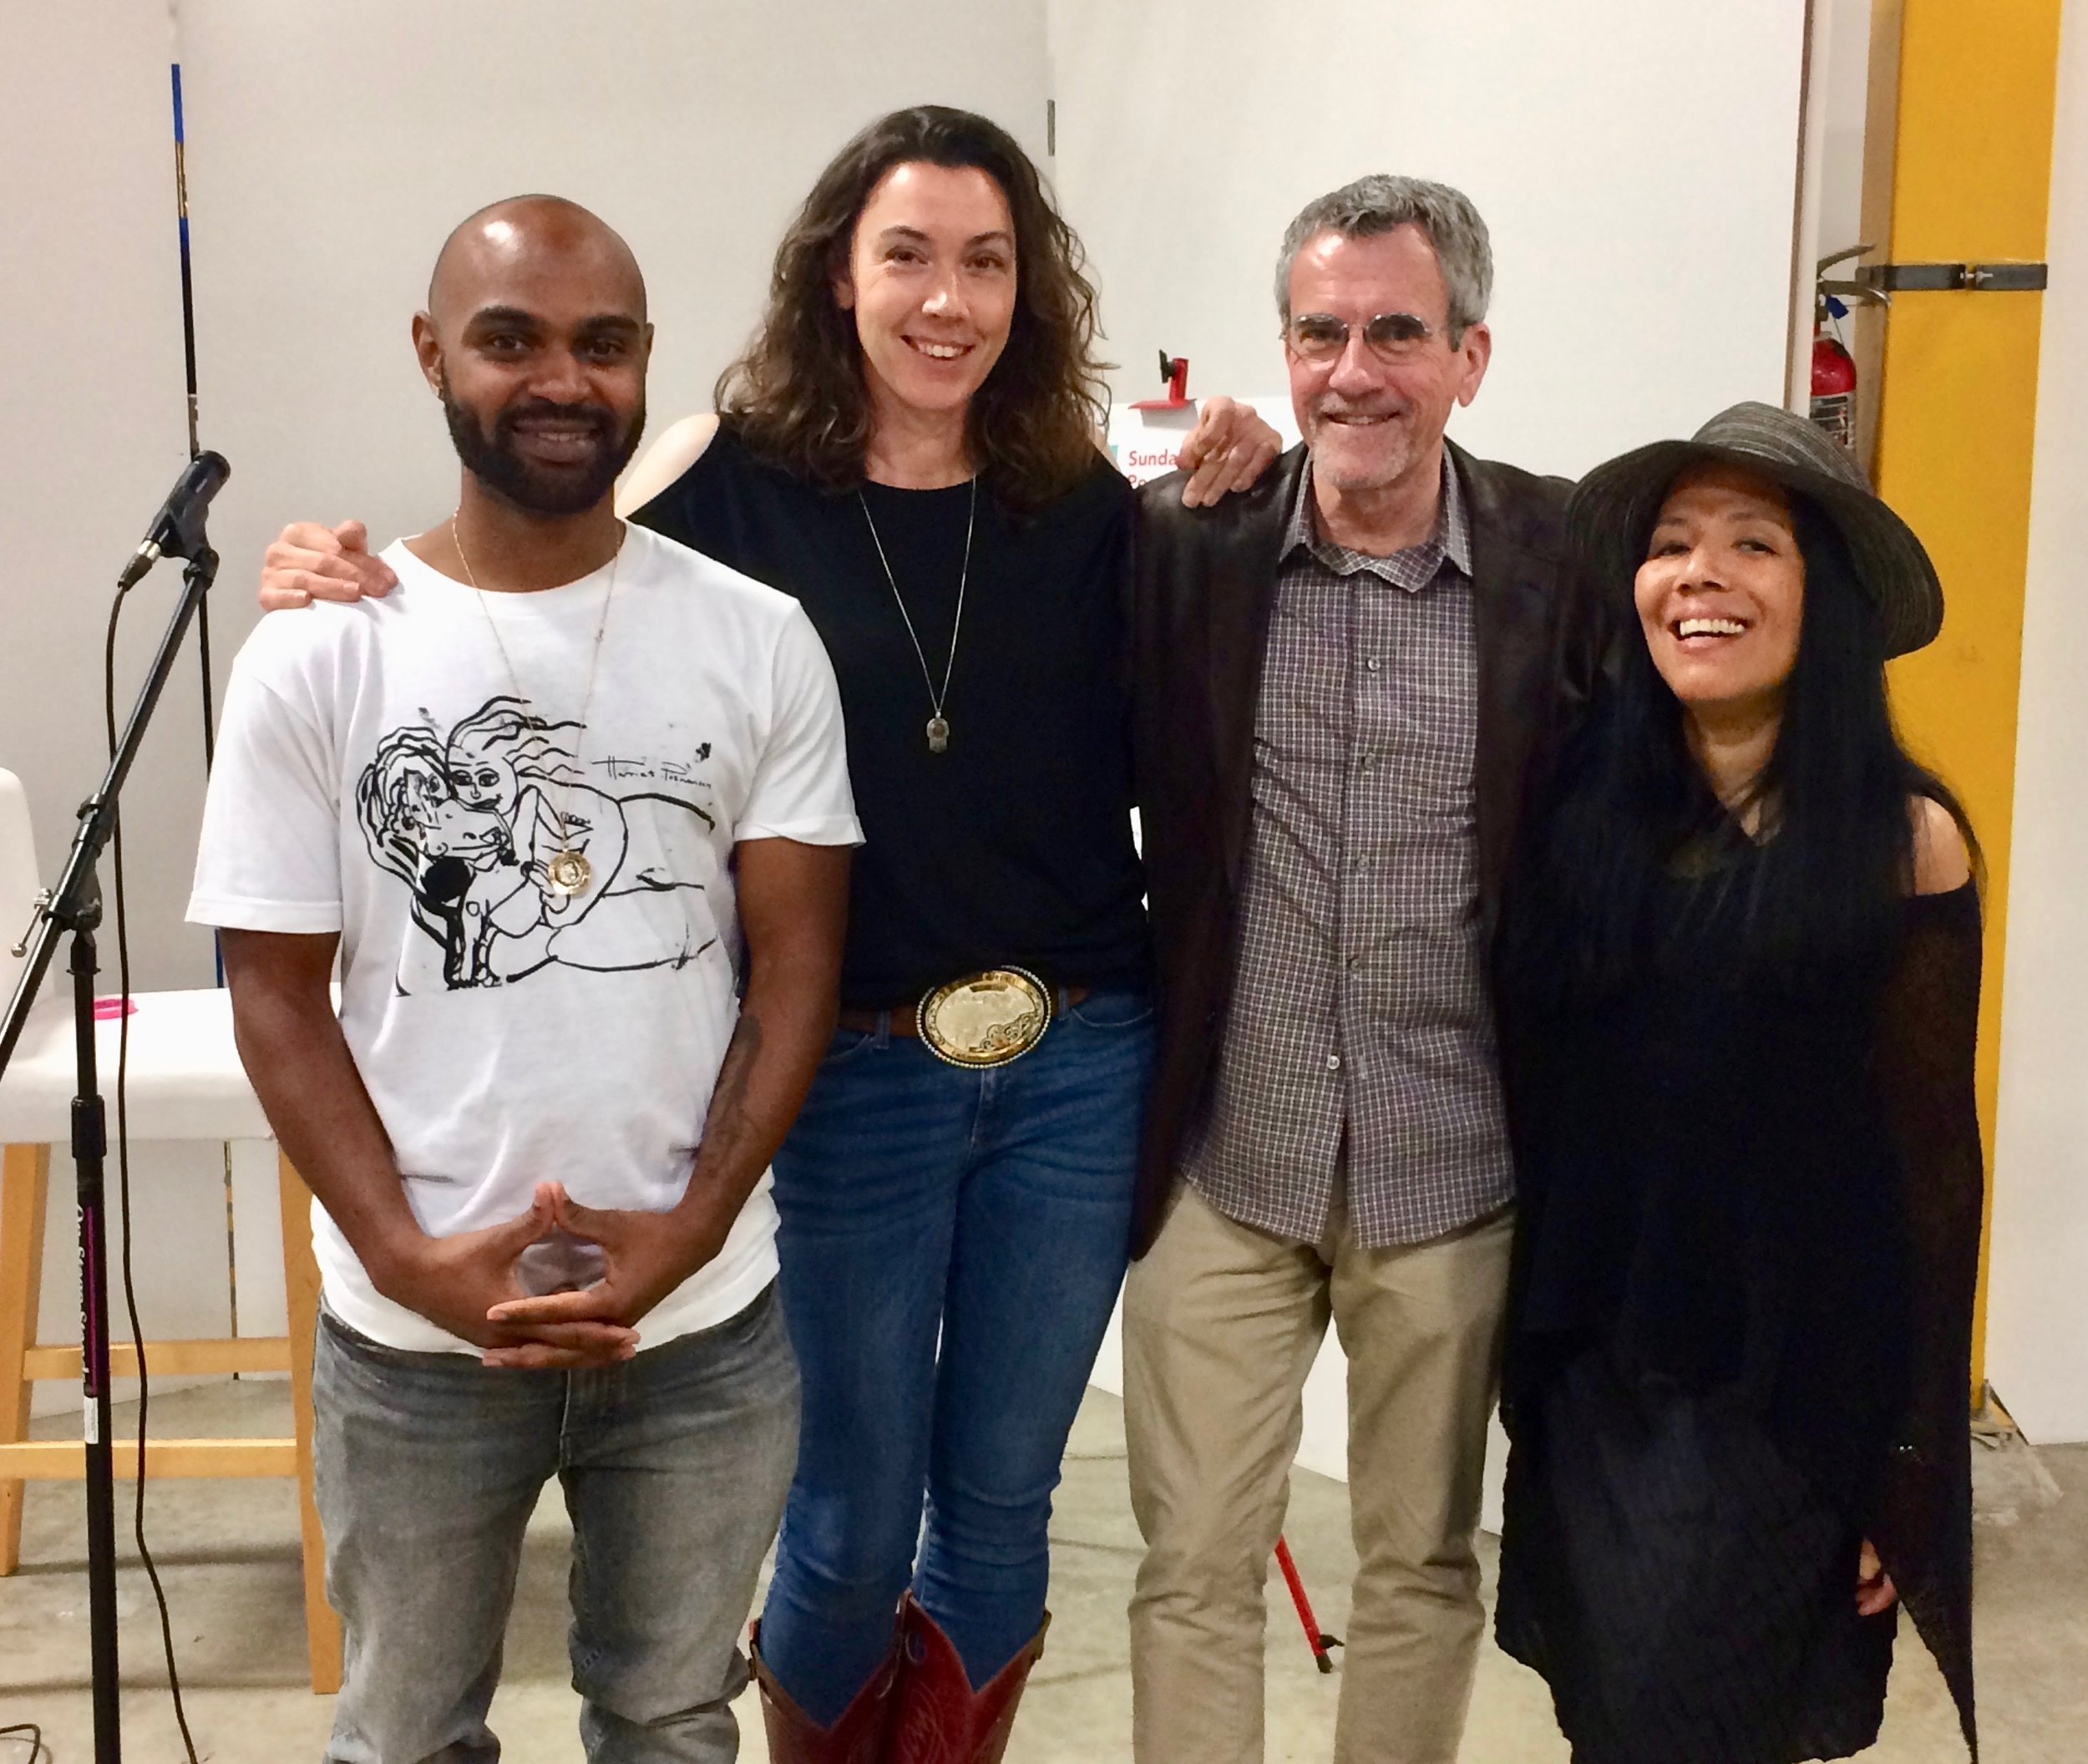 - Reading with Rohan daCosta, Sarah Kobrinsky, and Terry Lucas in Emeryville, 2018.